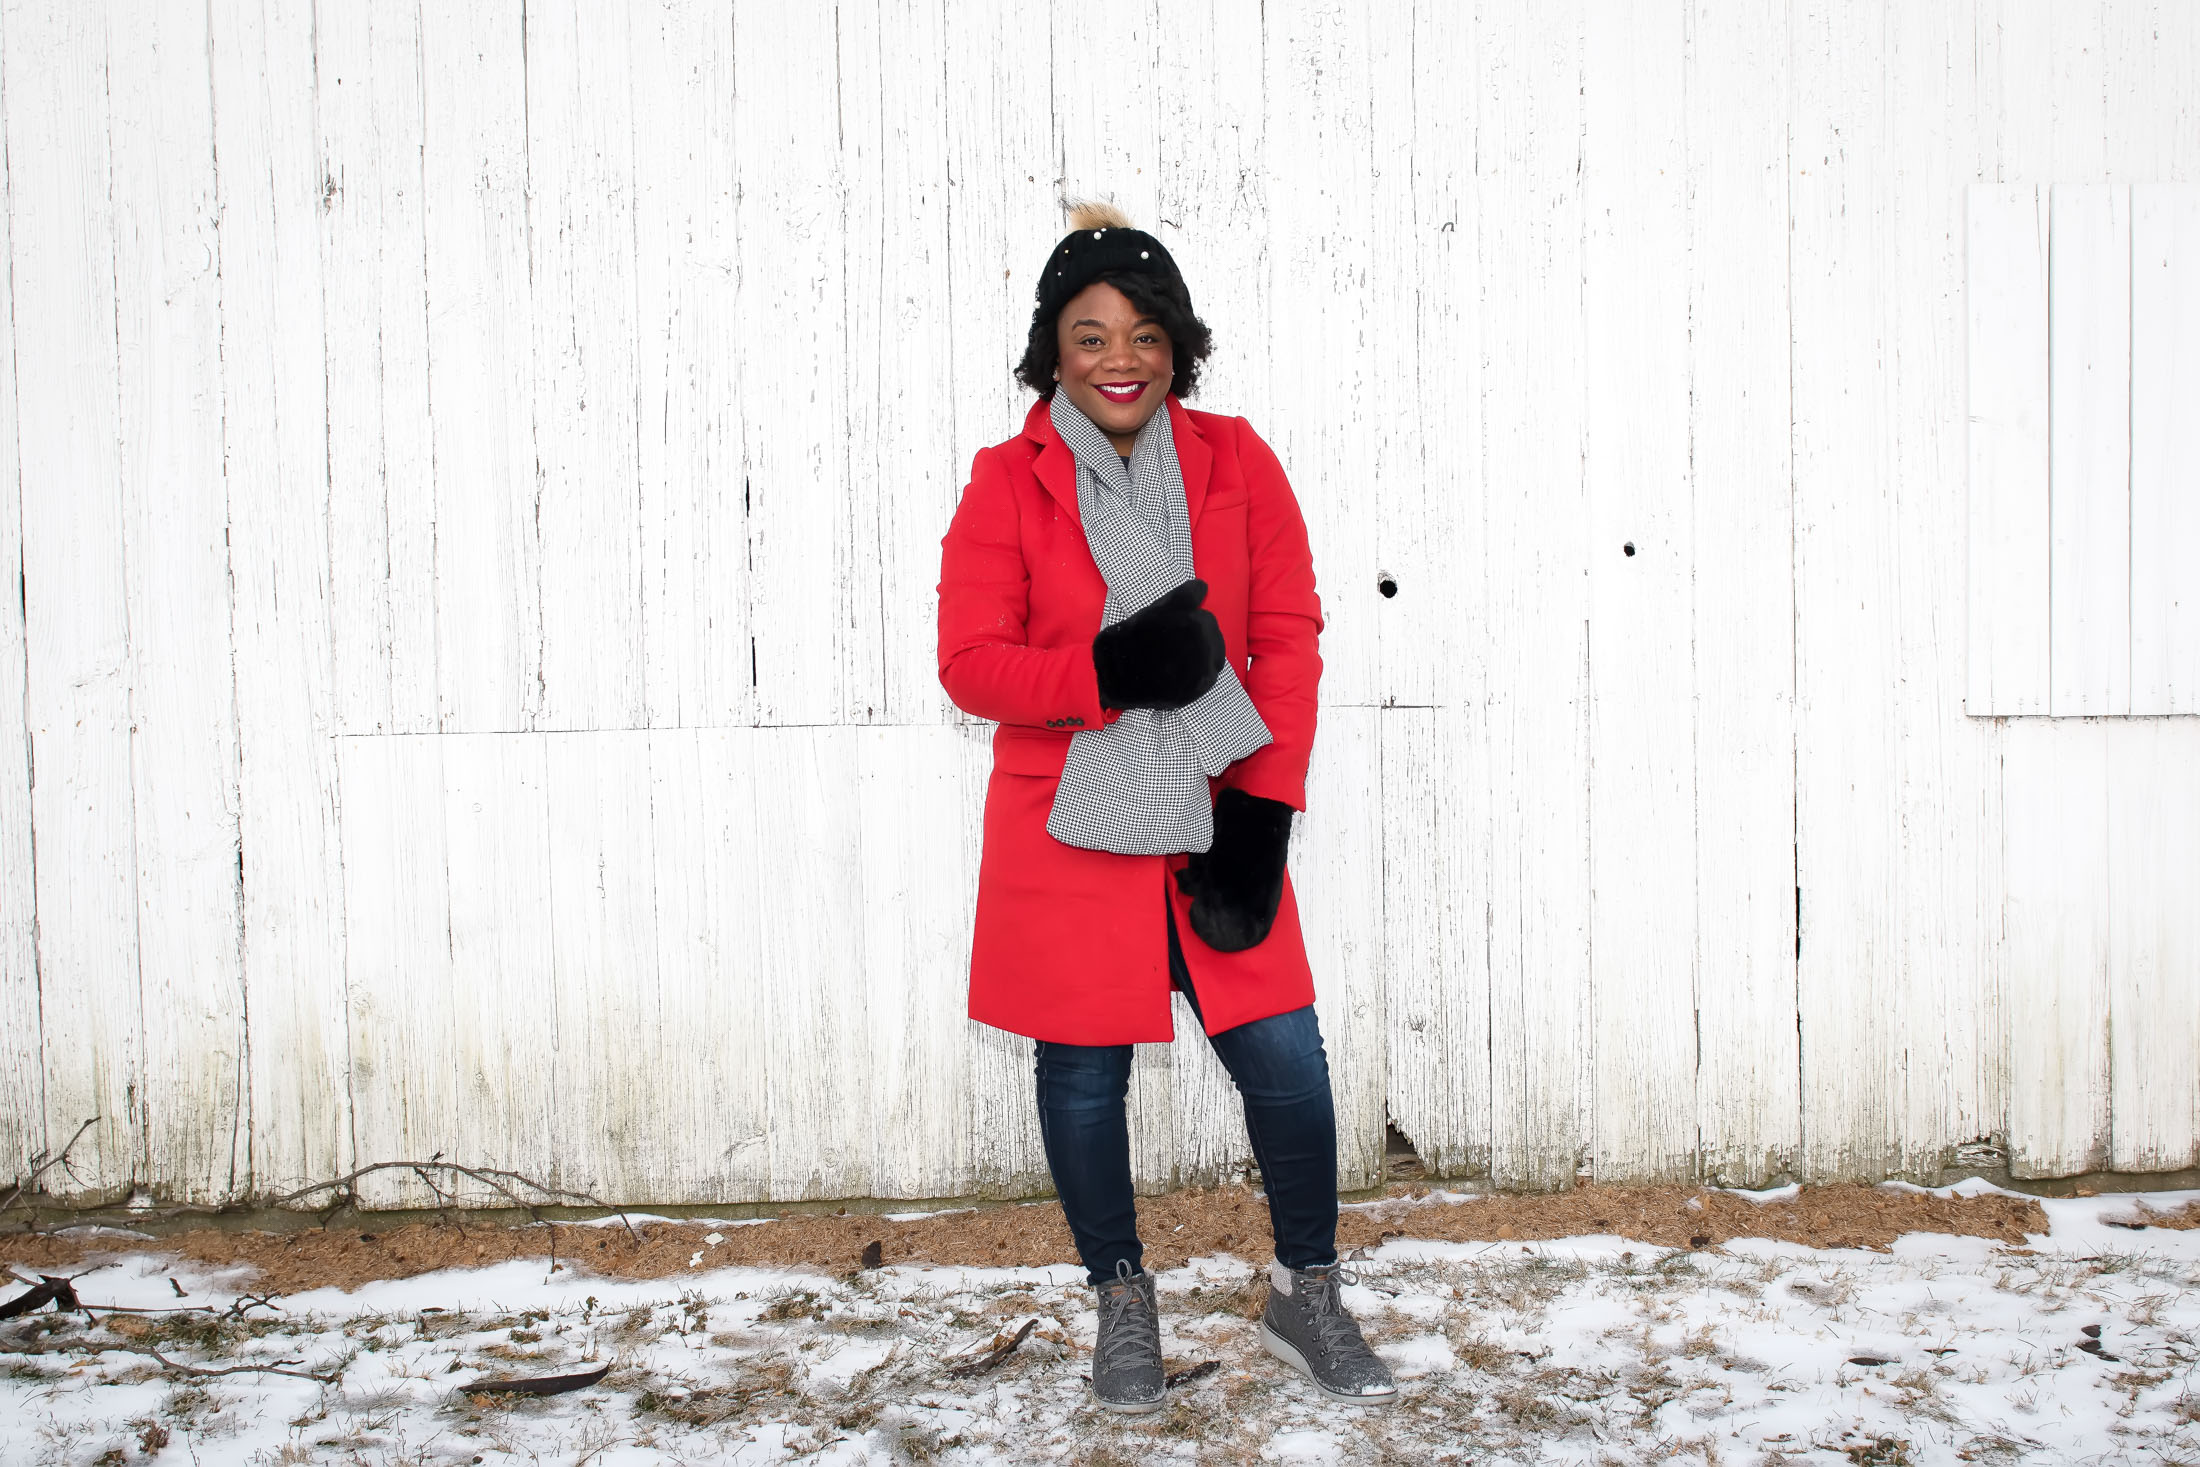 Cute hats, gloves, mittens & scarves make winter WAYYYY more fun. We're keepin' it chic with these cozy accessories. Polar vortex? Bye, Felicia!